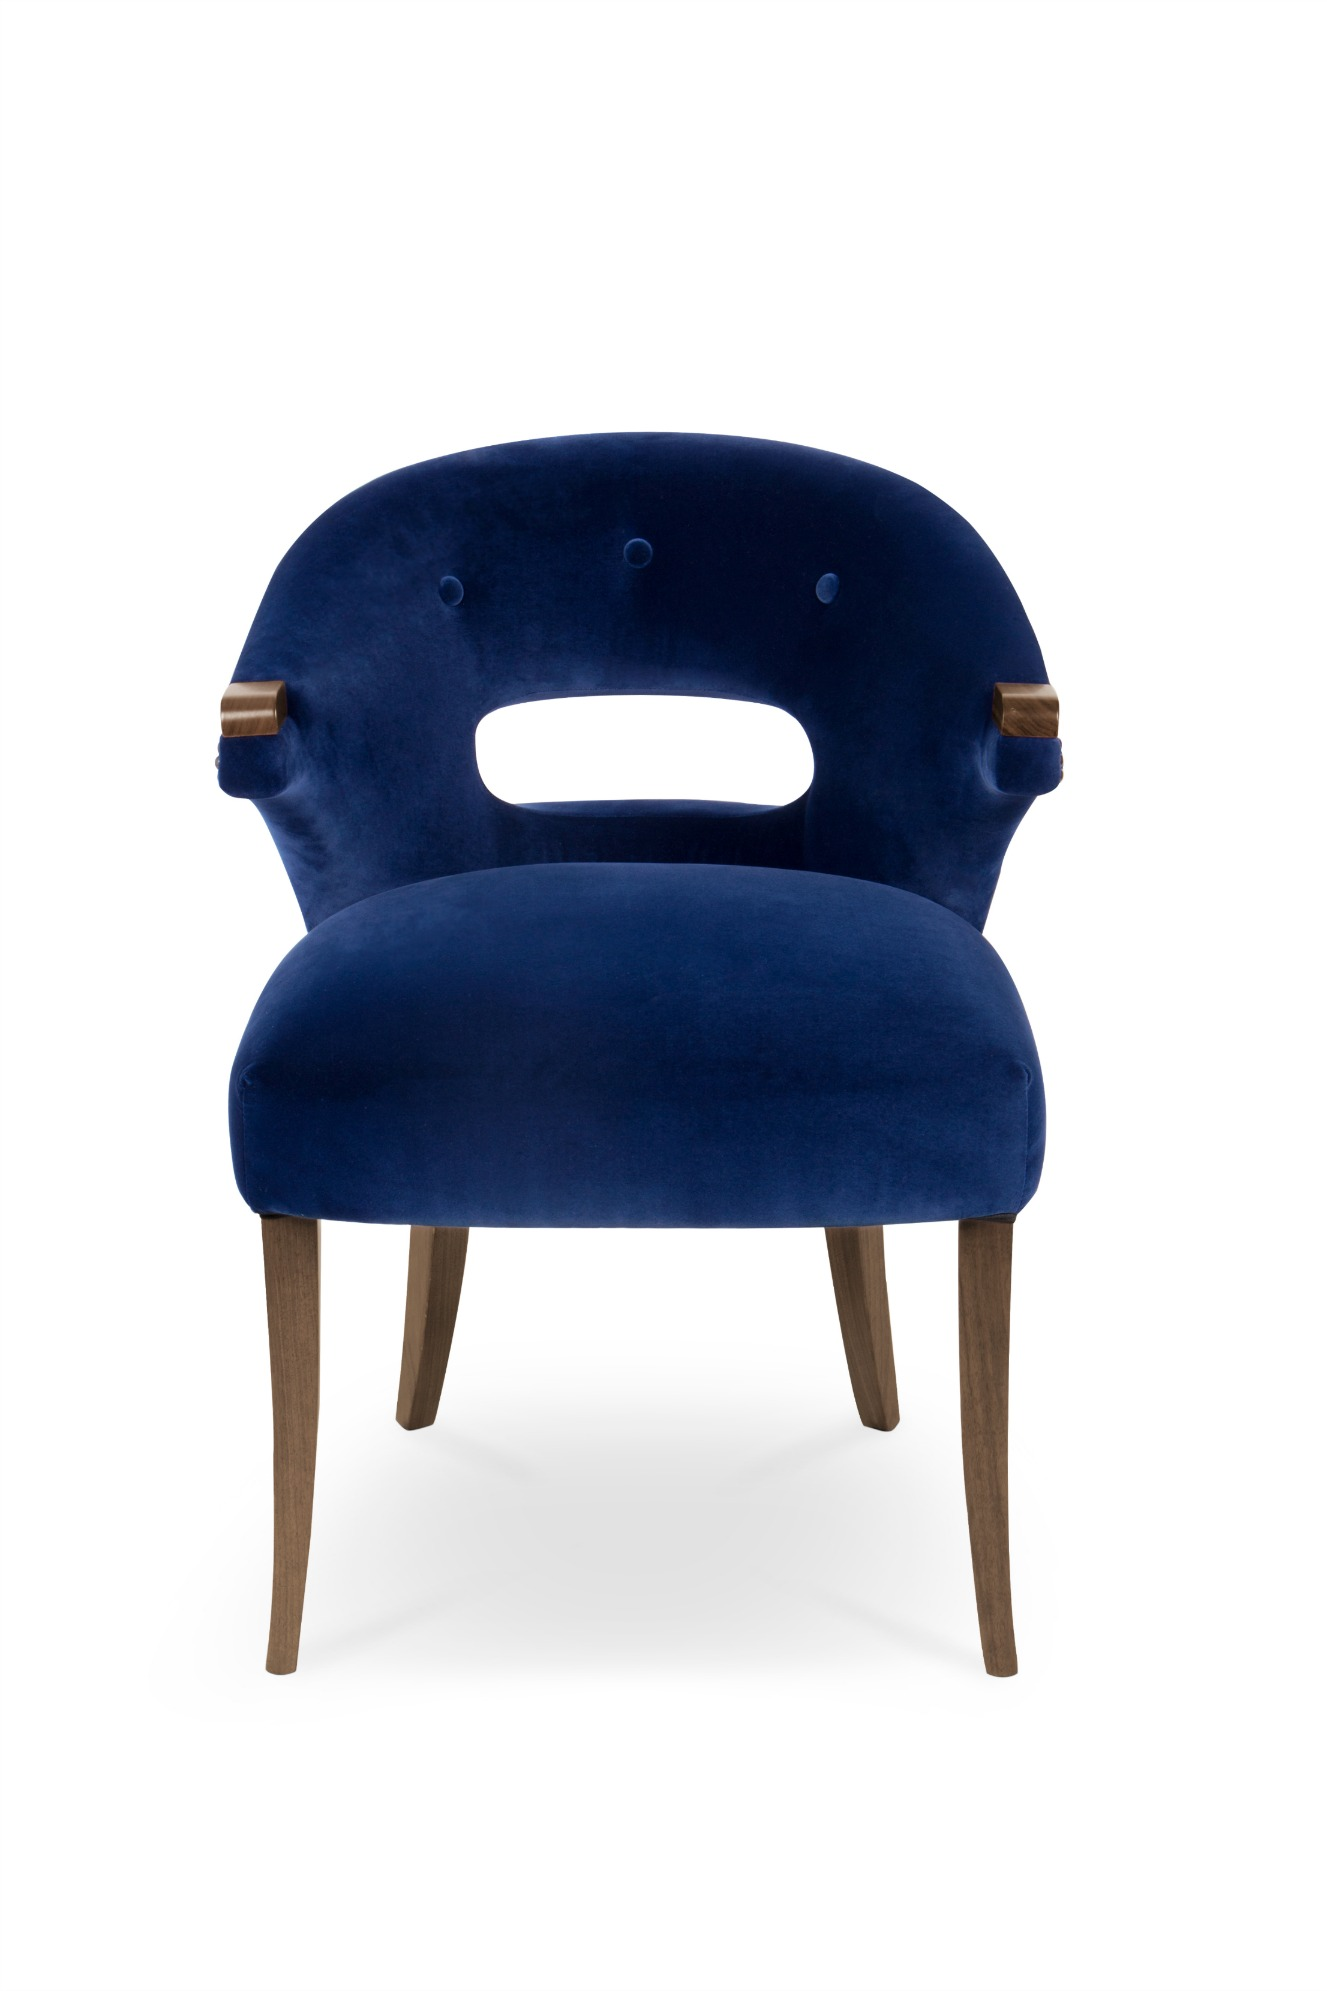 maison et objet 2020 Maison et Objet 2020: The Best of Modern Chairs Maison et Objet 2020 The Best of Modern Chairs 3